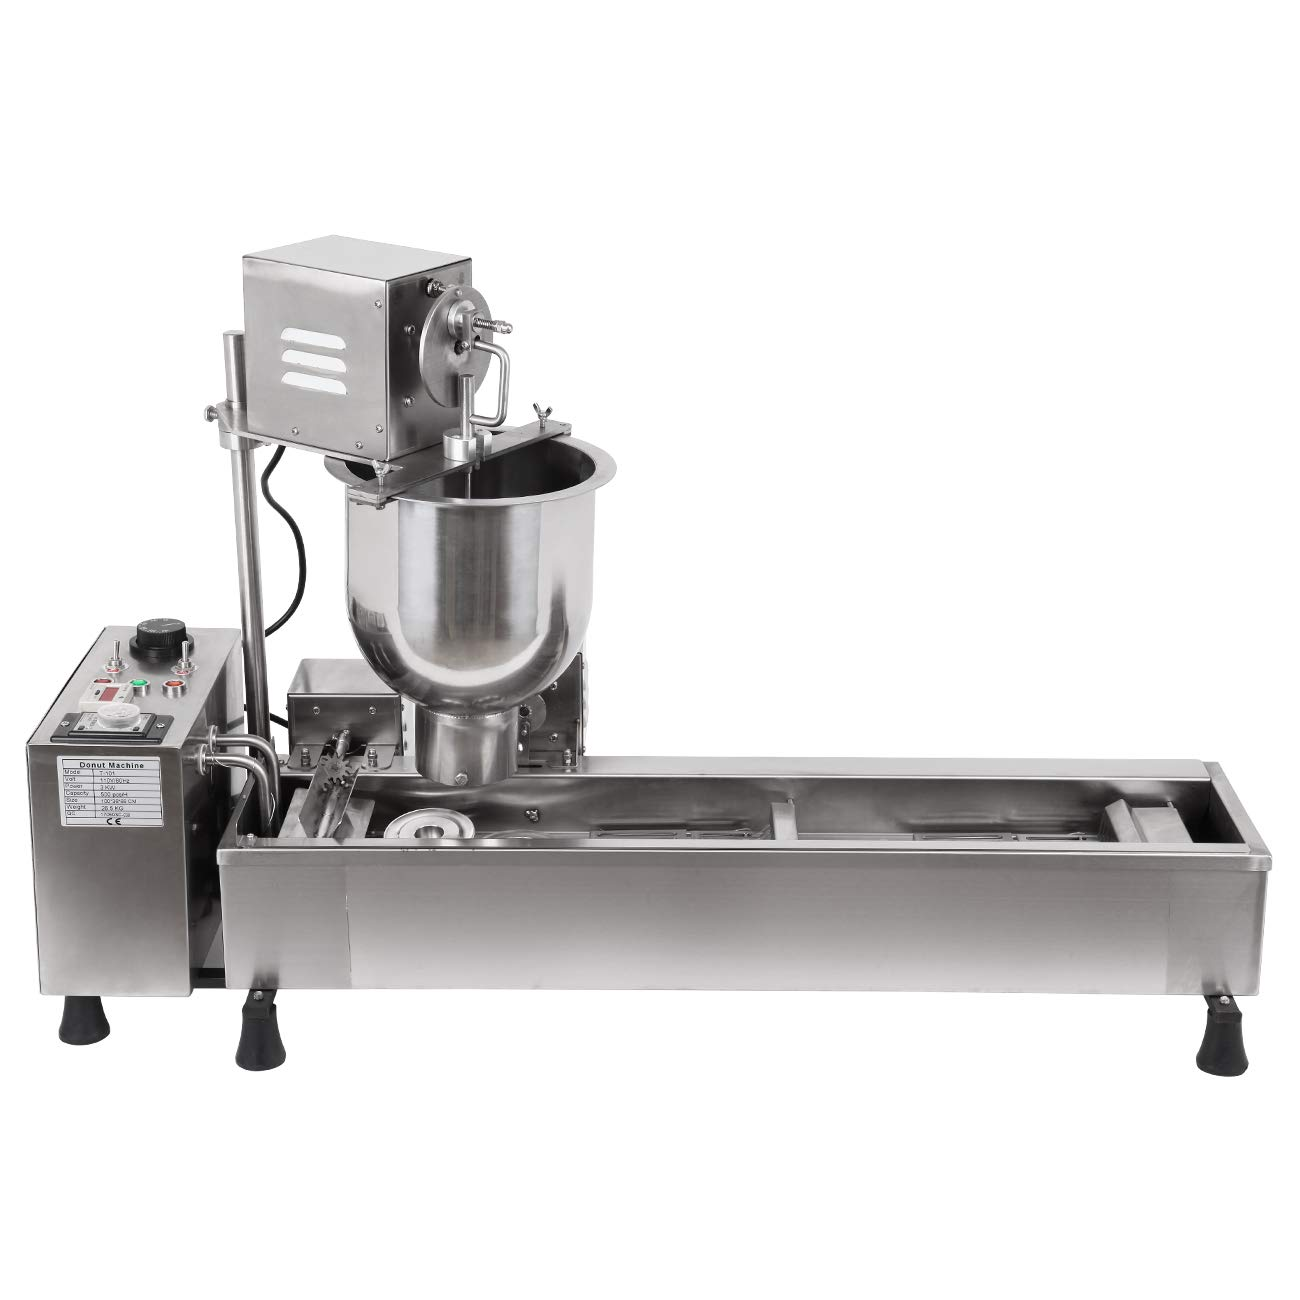 Ridgeyard Stainless Steel Commercial Donut Maker 3000 Watts Automatic Donut Maker 7L Donut Making Machine with 3 Sets Mold,Wide Oil Tank by Ridgeyard